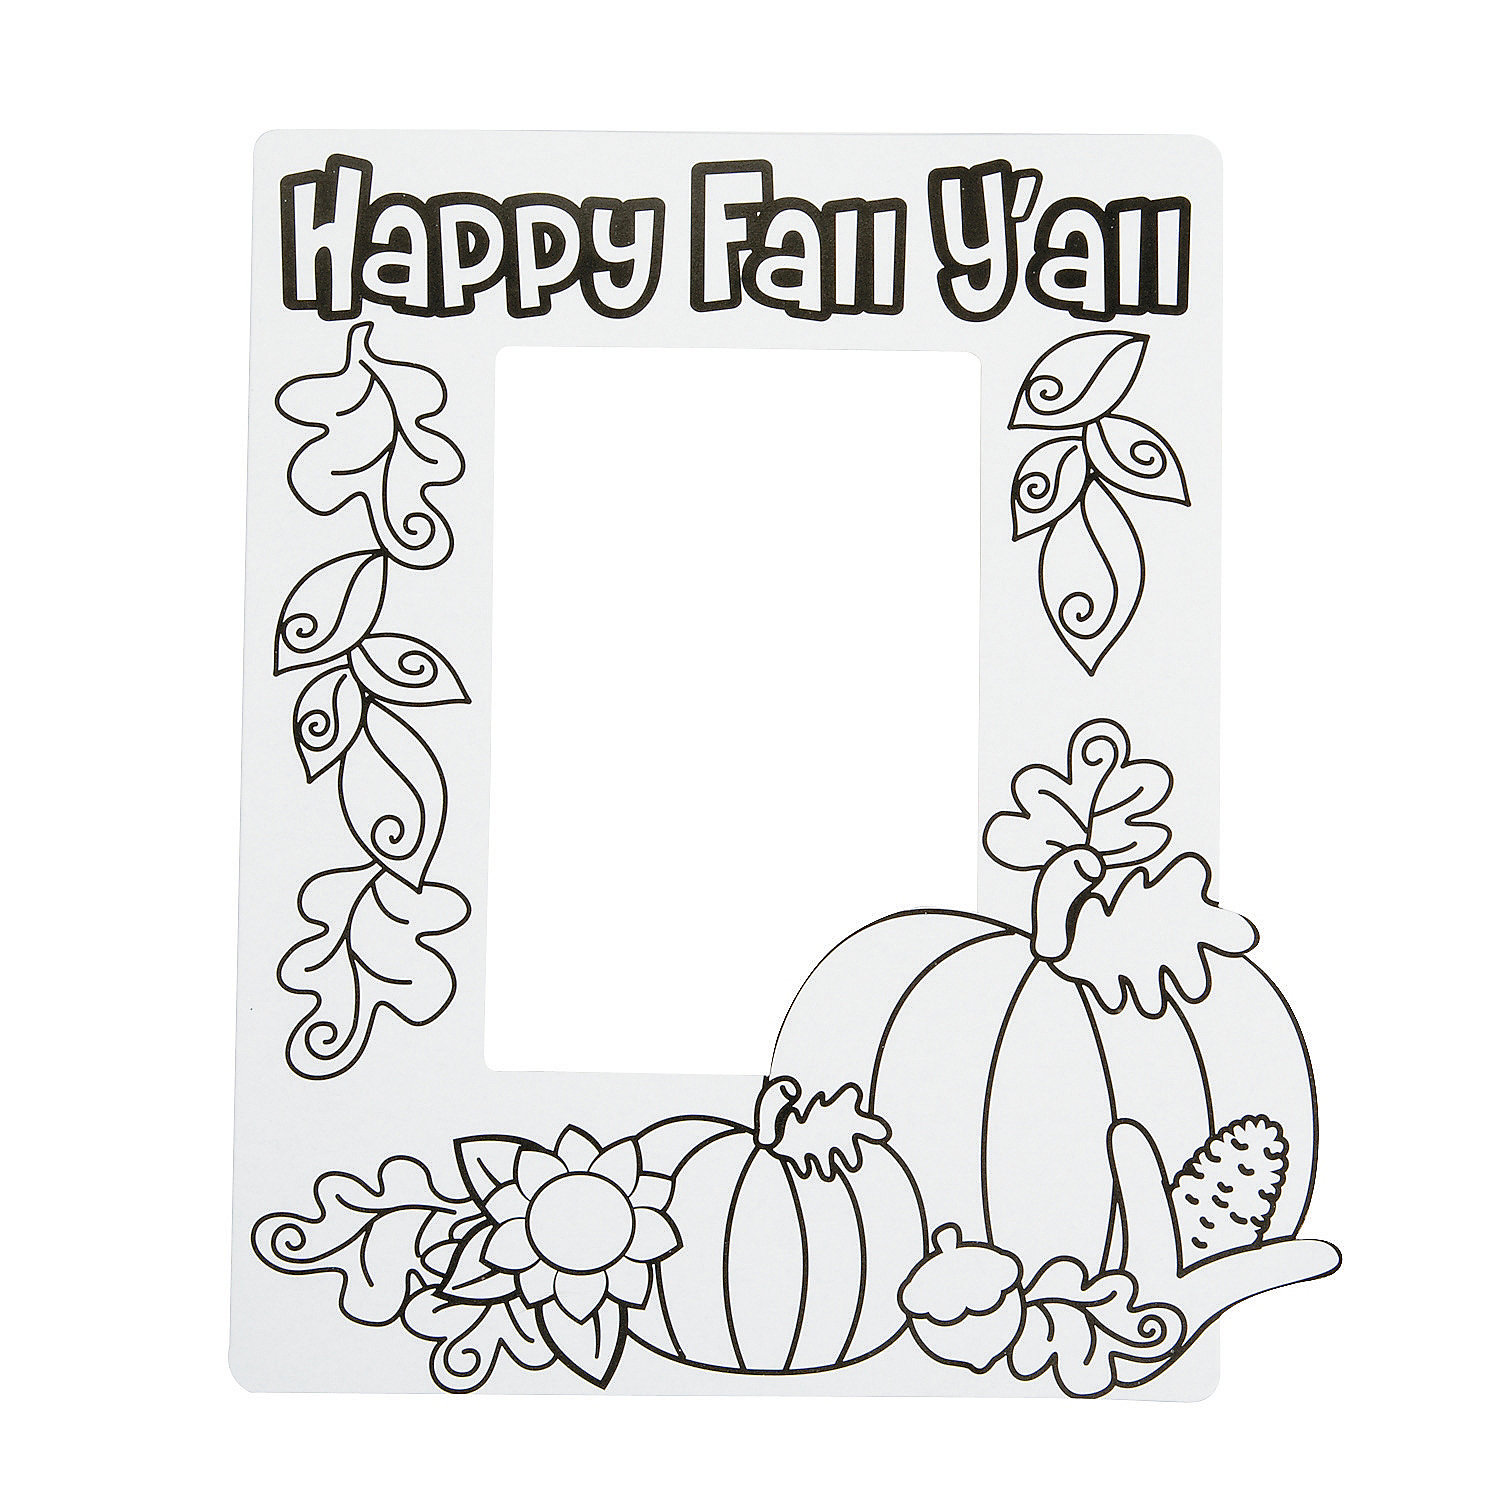 Color Your Own Happy Fall Y all Picture Frame Mags